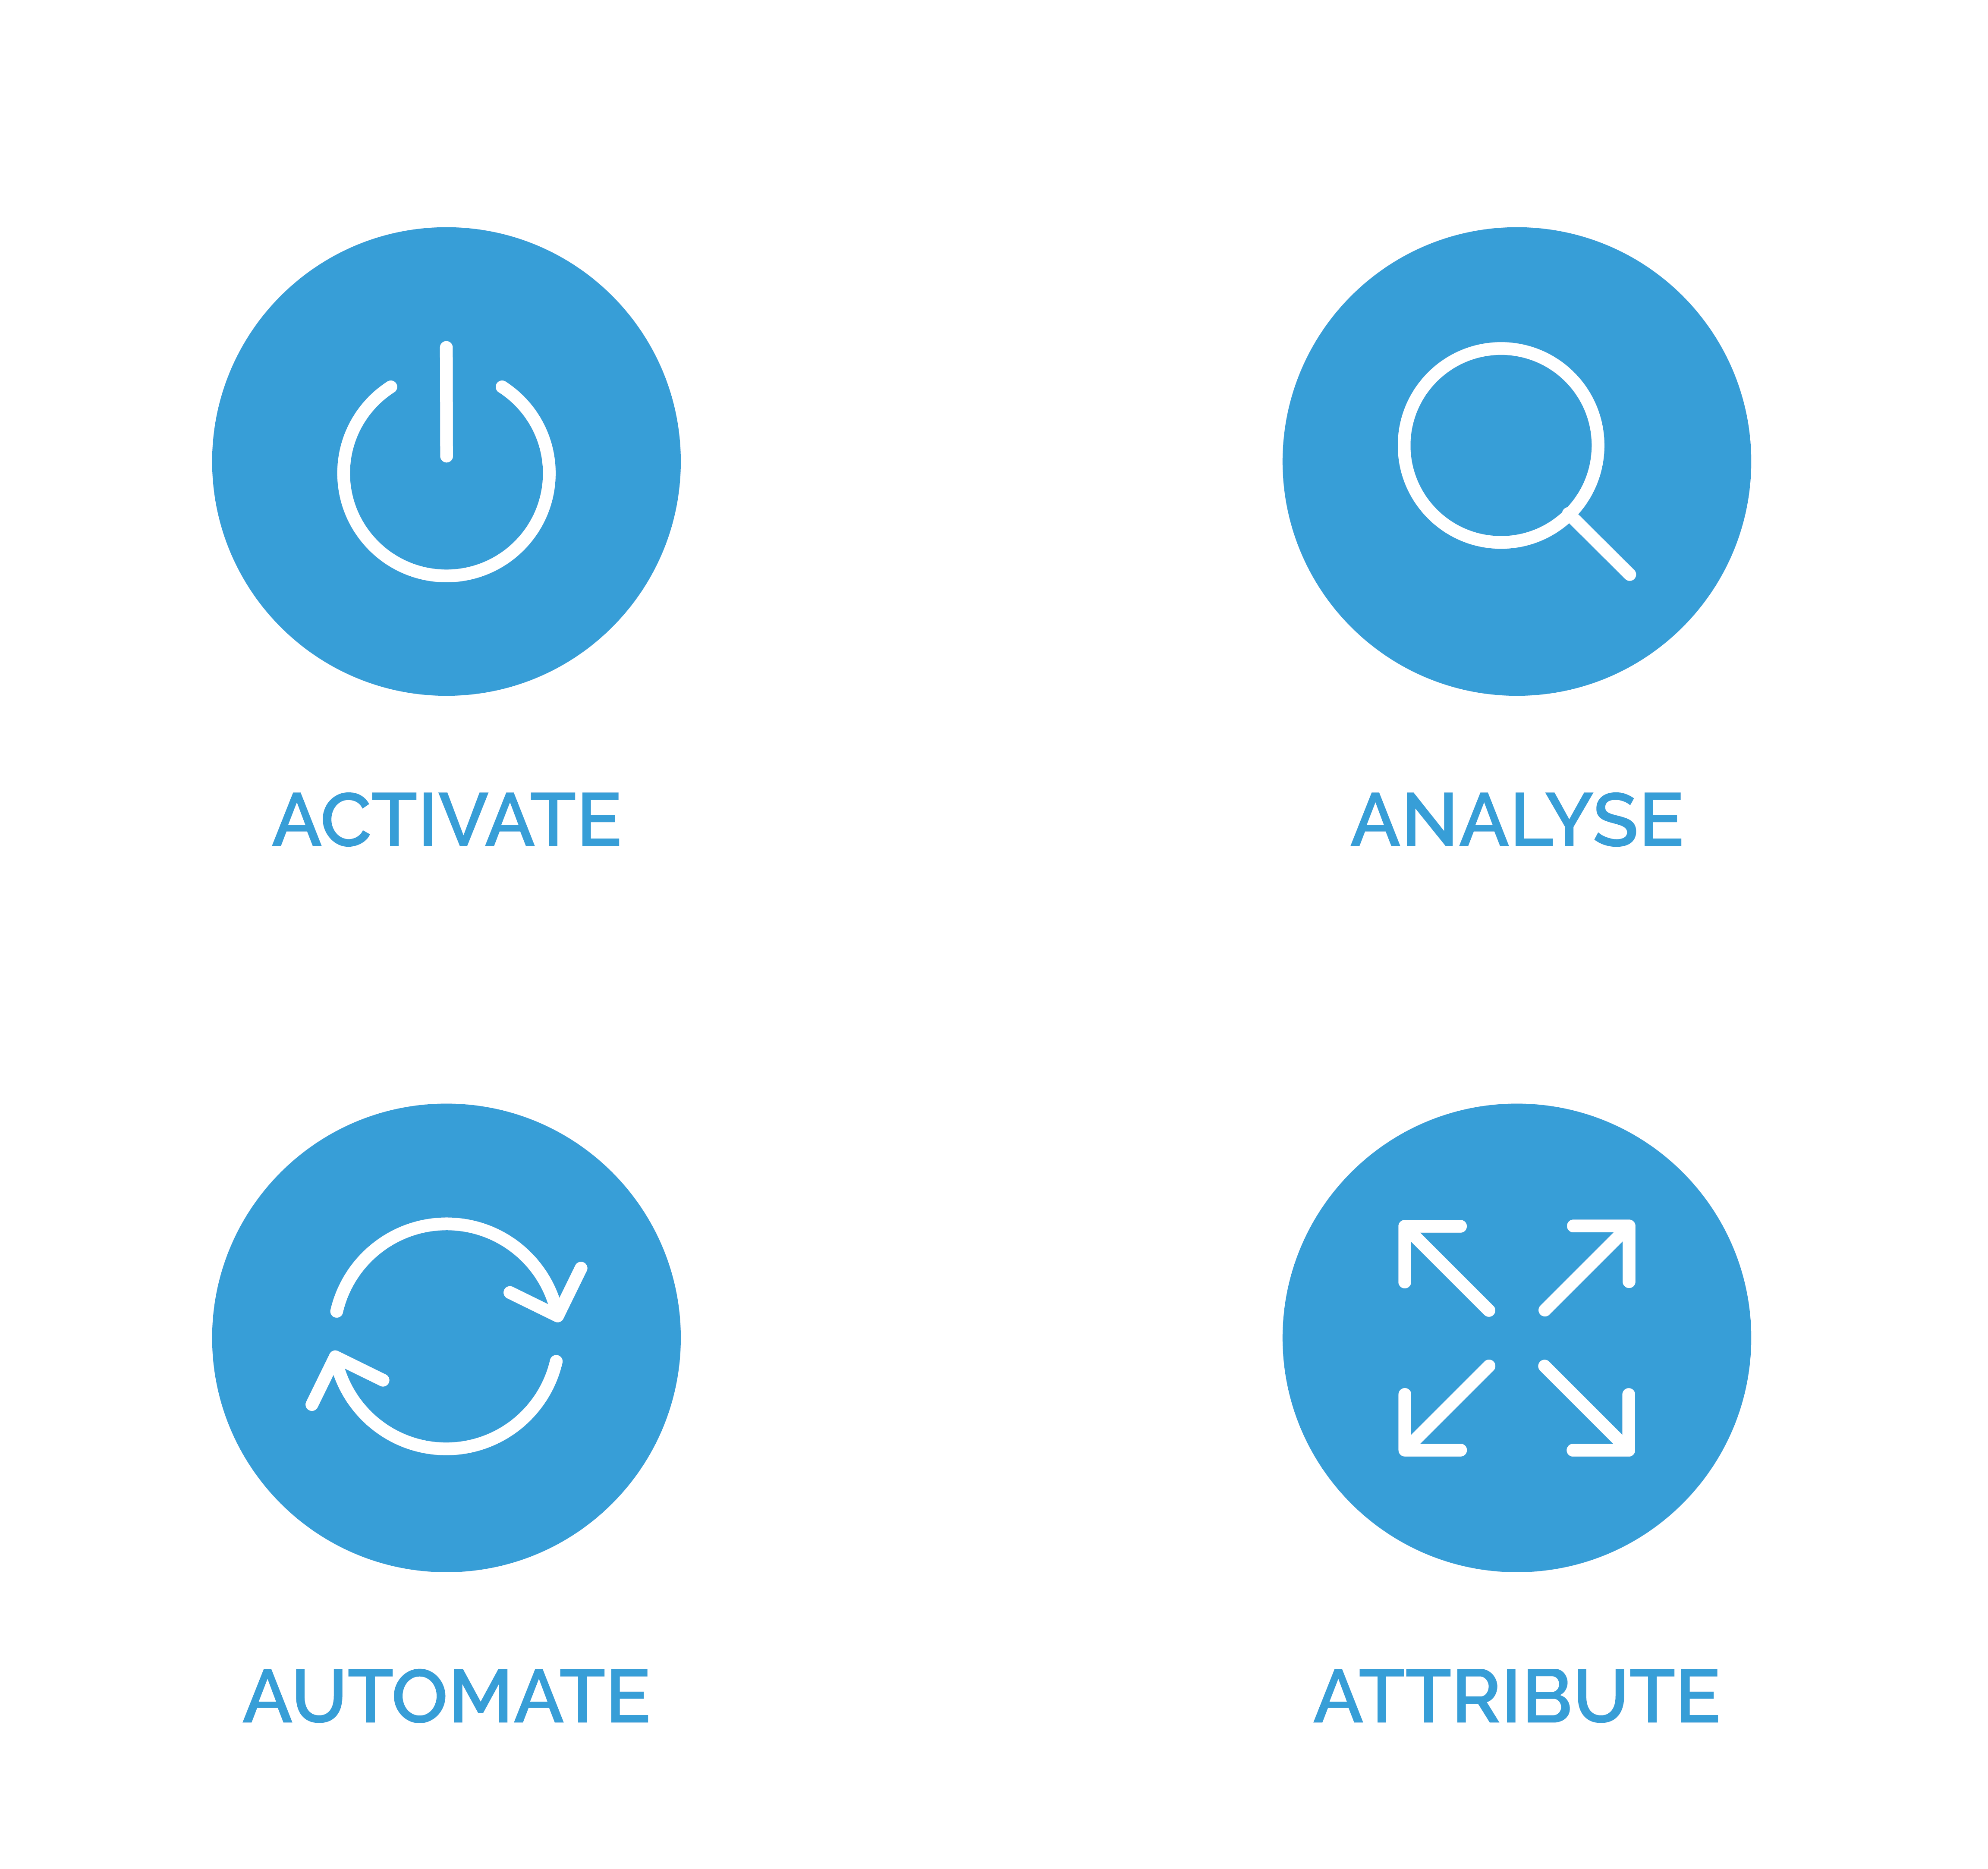 Activate, Analyse, Automate, Attribute